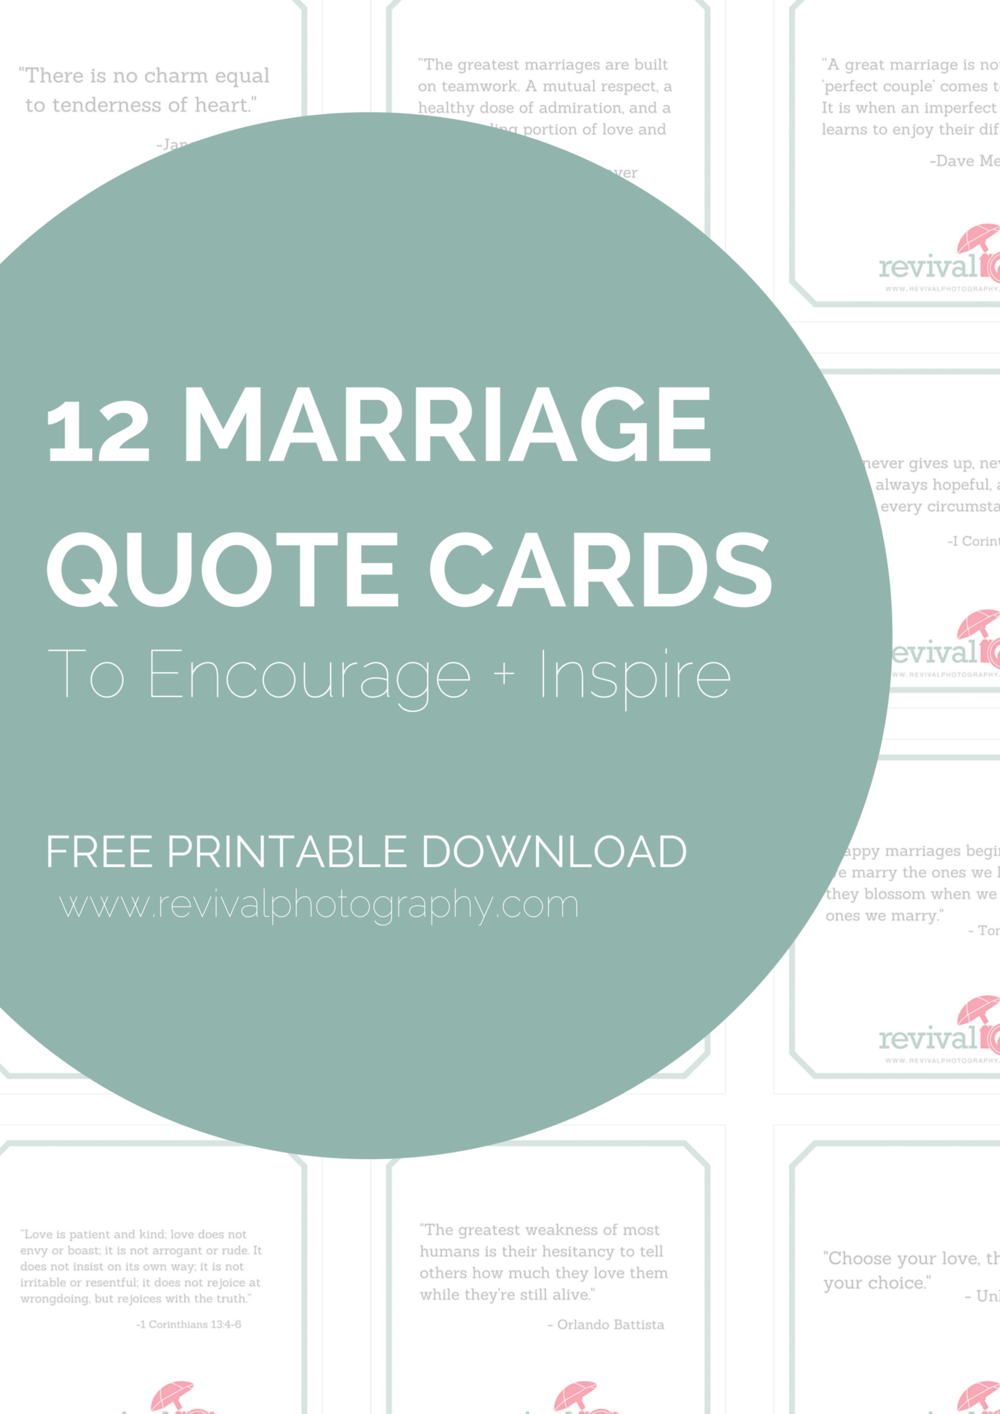 12 Marriage Quote Cards To Encourage Inspire Free Printable